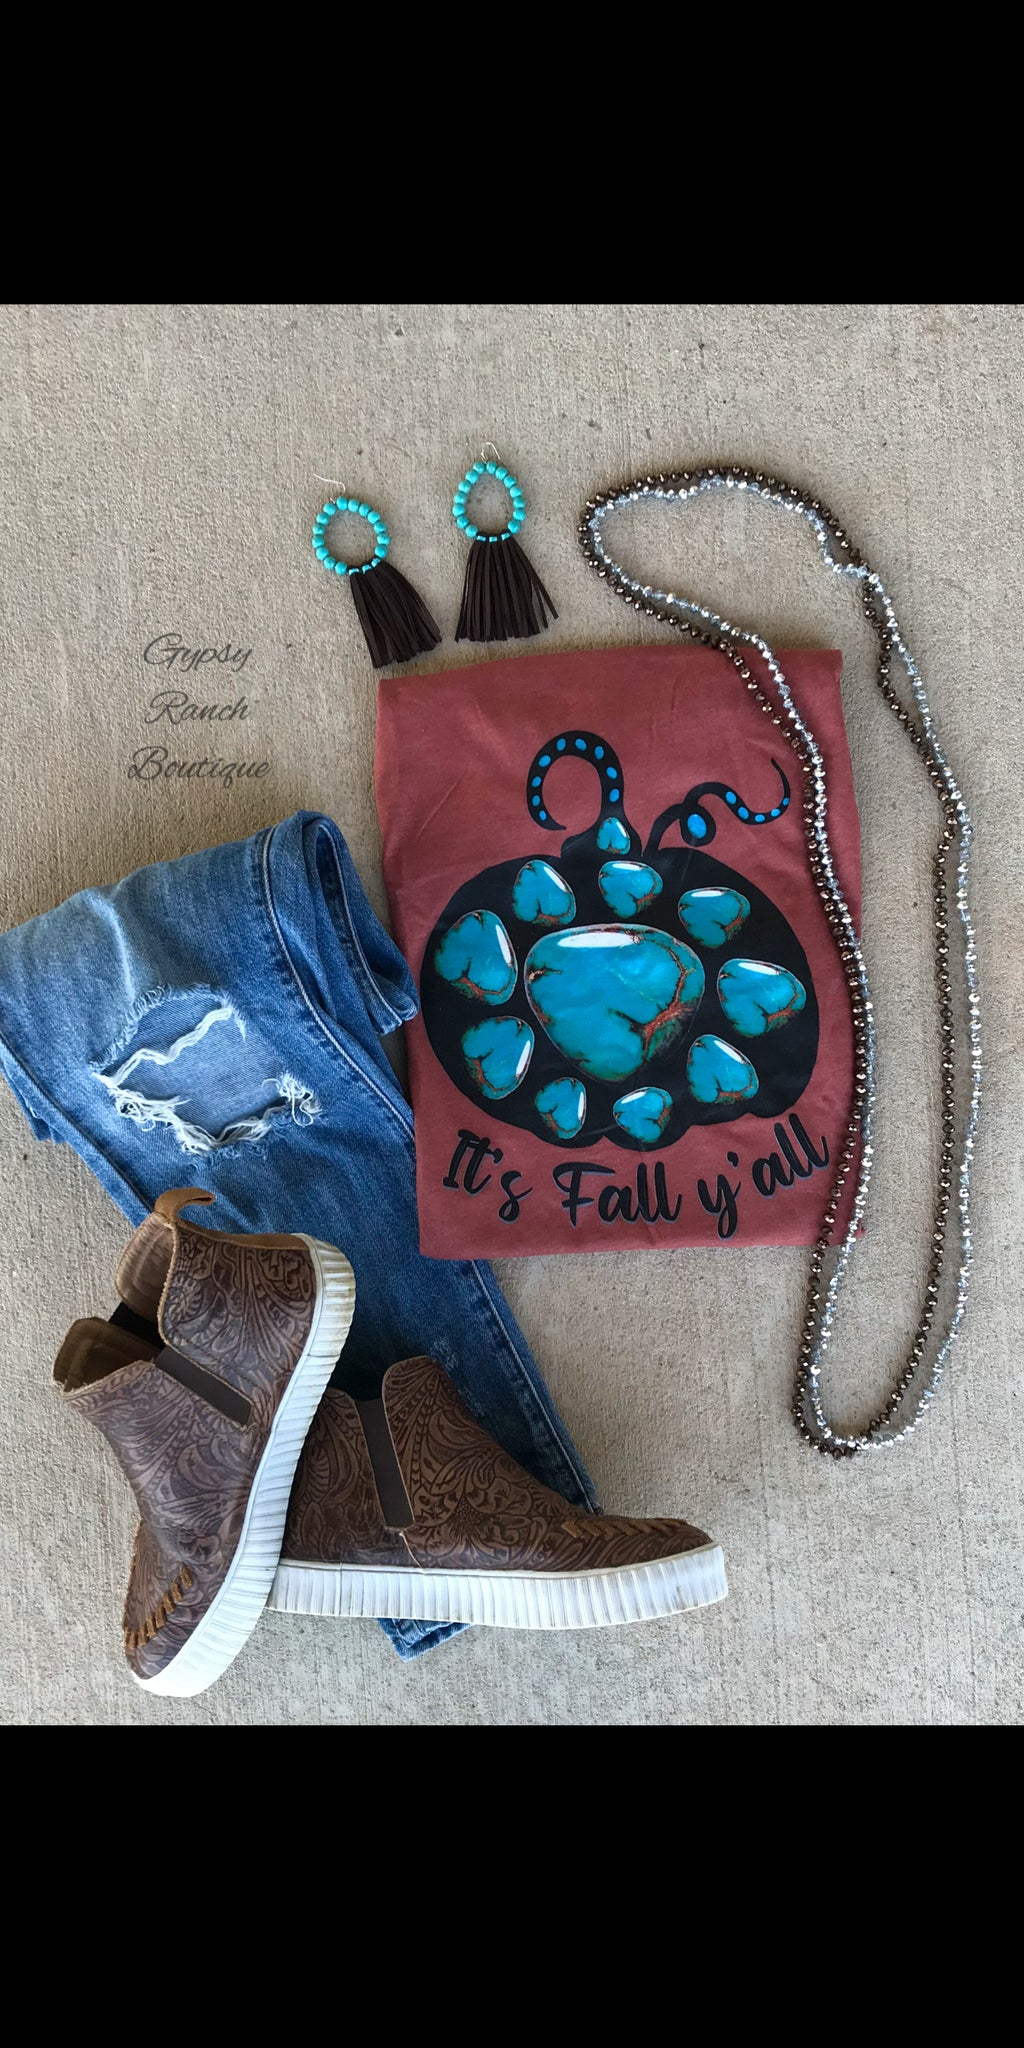 It's Fall Y'all Turquoise Squash Pumpkin Top - Also in Plus Size